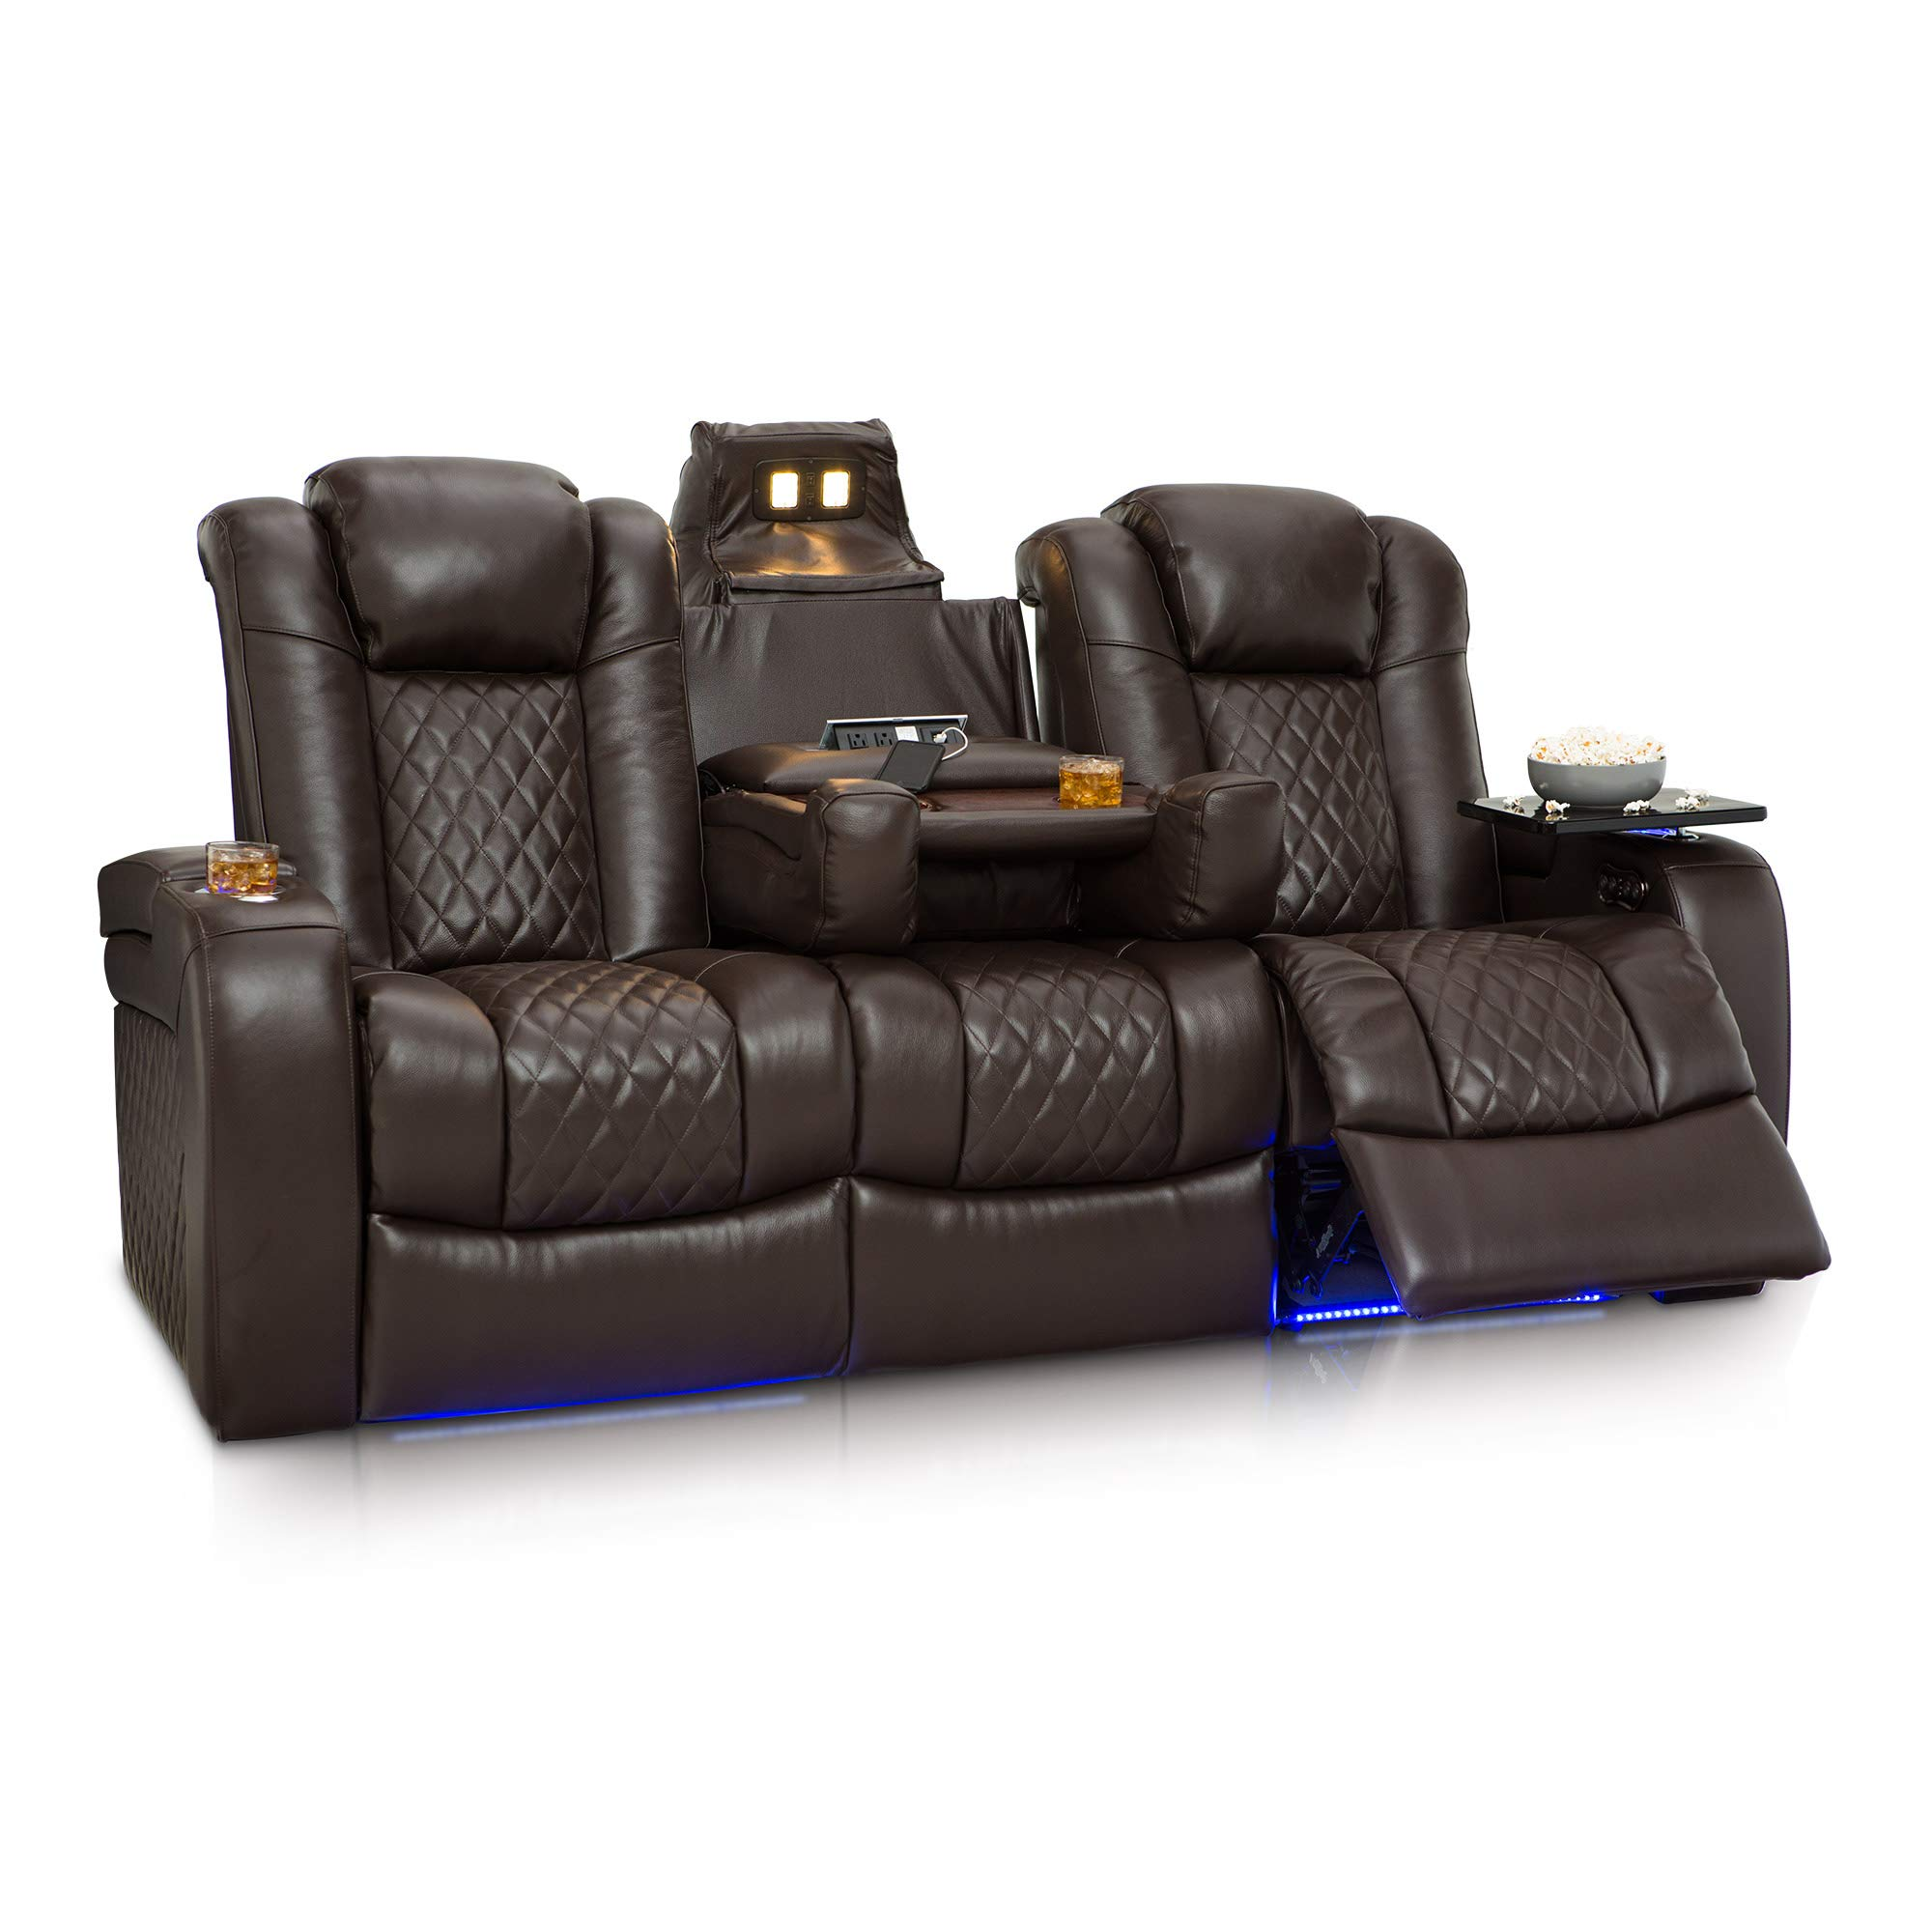 Seatcraft Anthem Home Theater Seating Leather Multimedia Power Recline Sofa  With Fold Down Table,